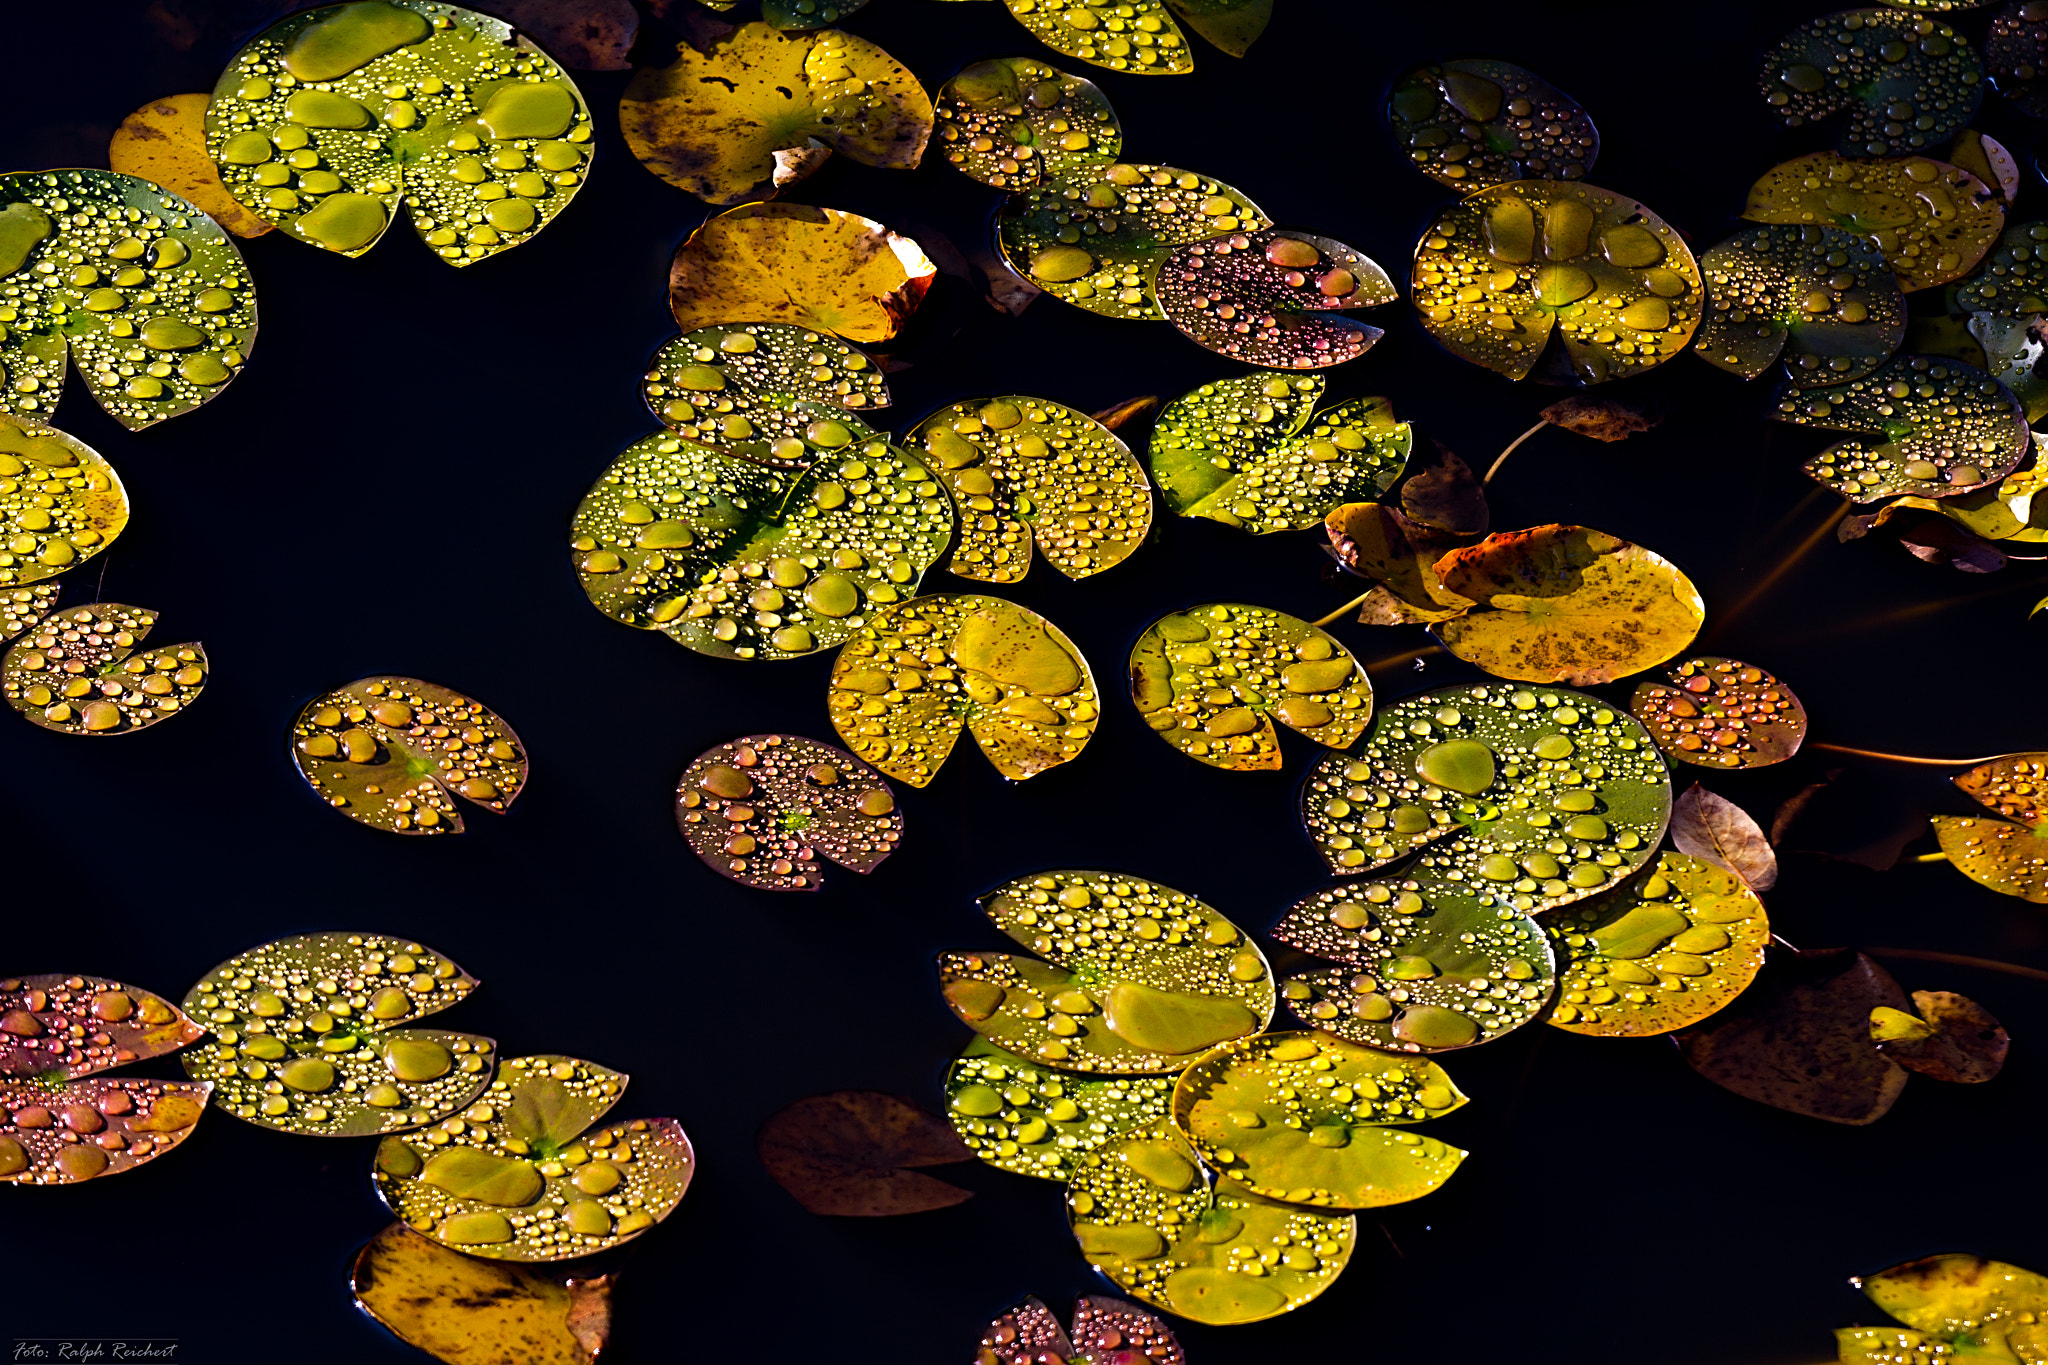 Photograph Autumn on the water by Ralph Reichert on 500px